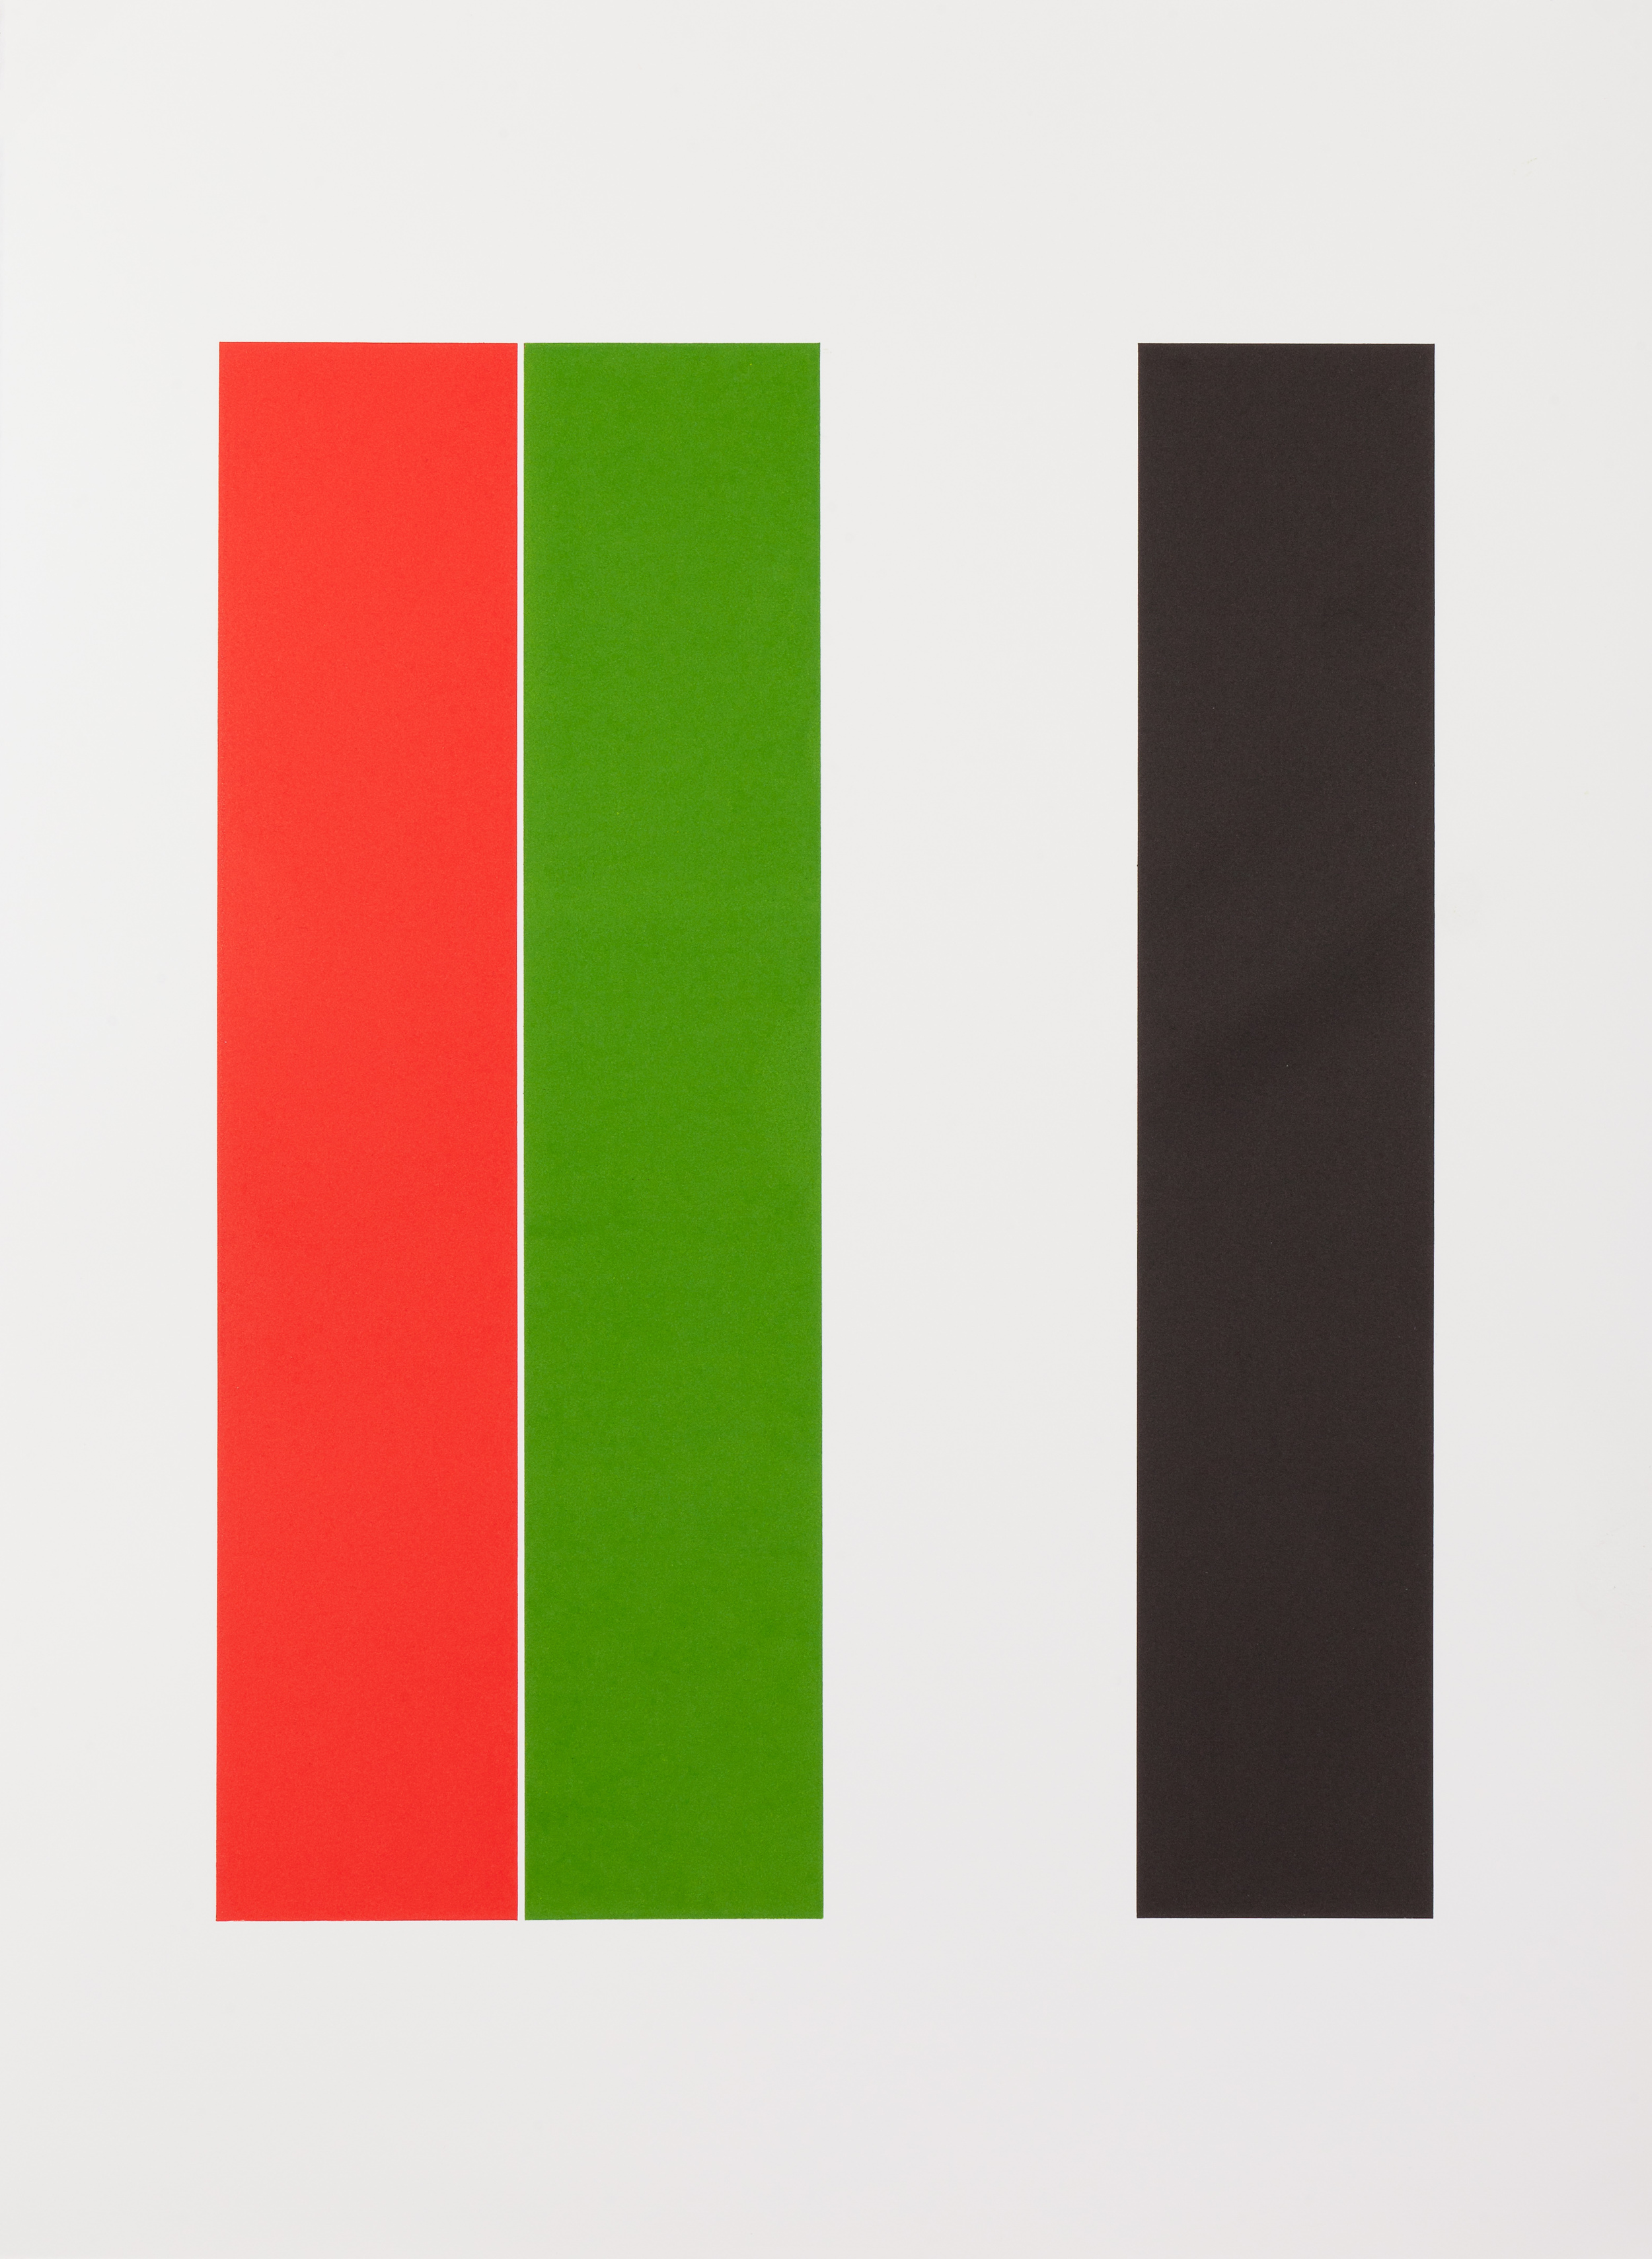 Henry Garfit   Red, Lime Green and Black Stripes   Relief print with reclaimed aluminium   76 cm x 57 cm   Edition of 10